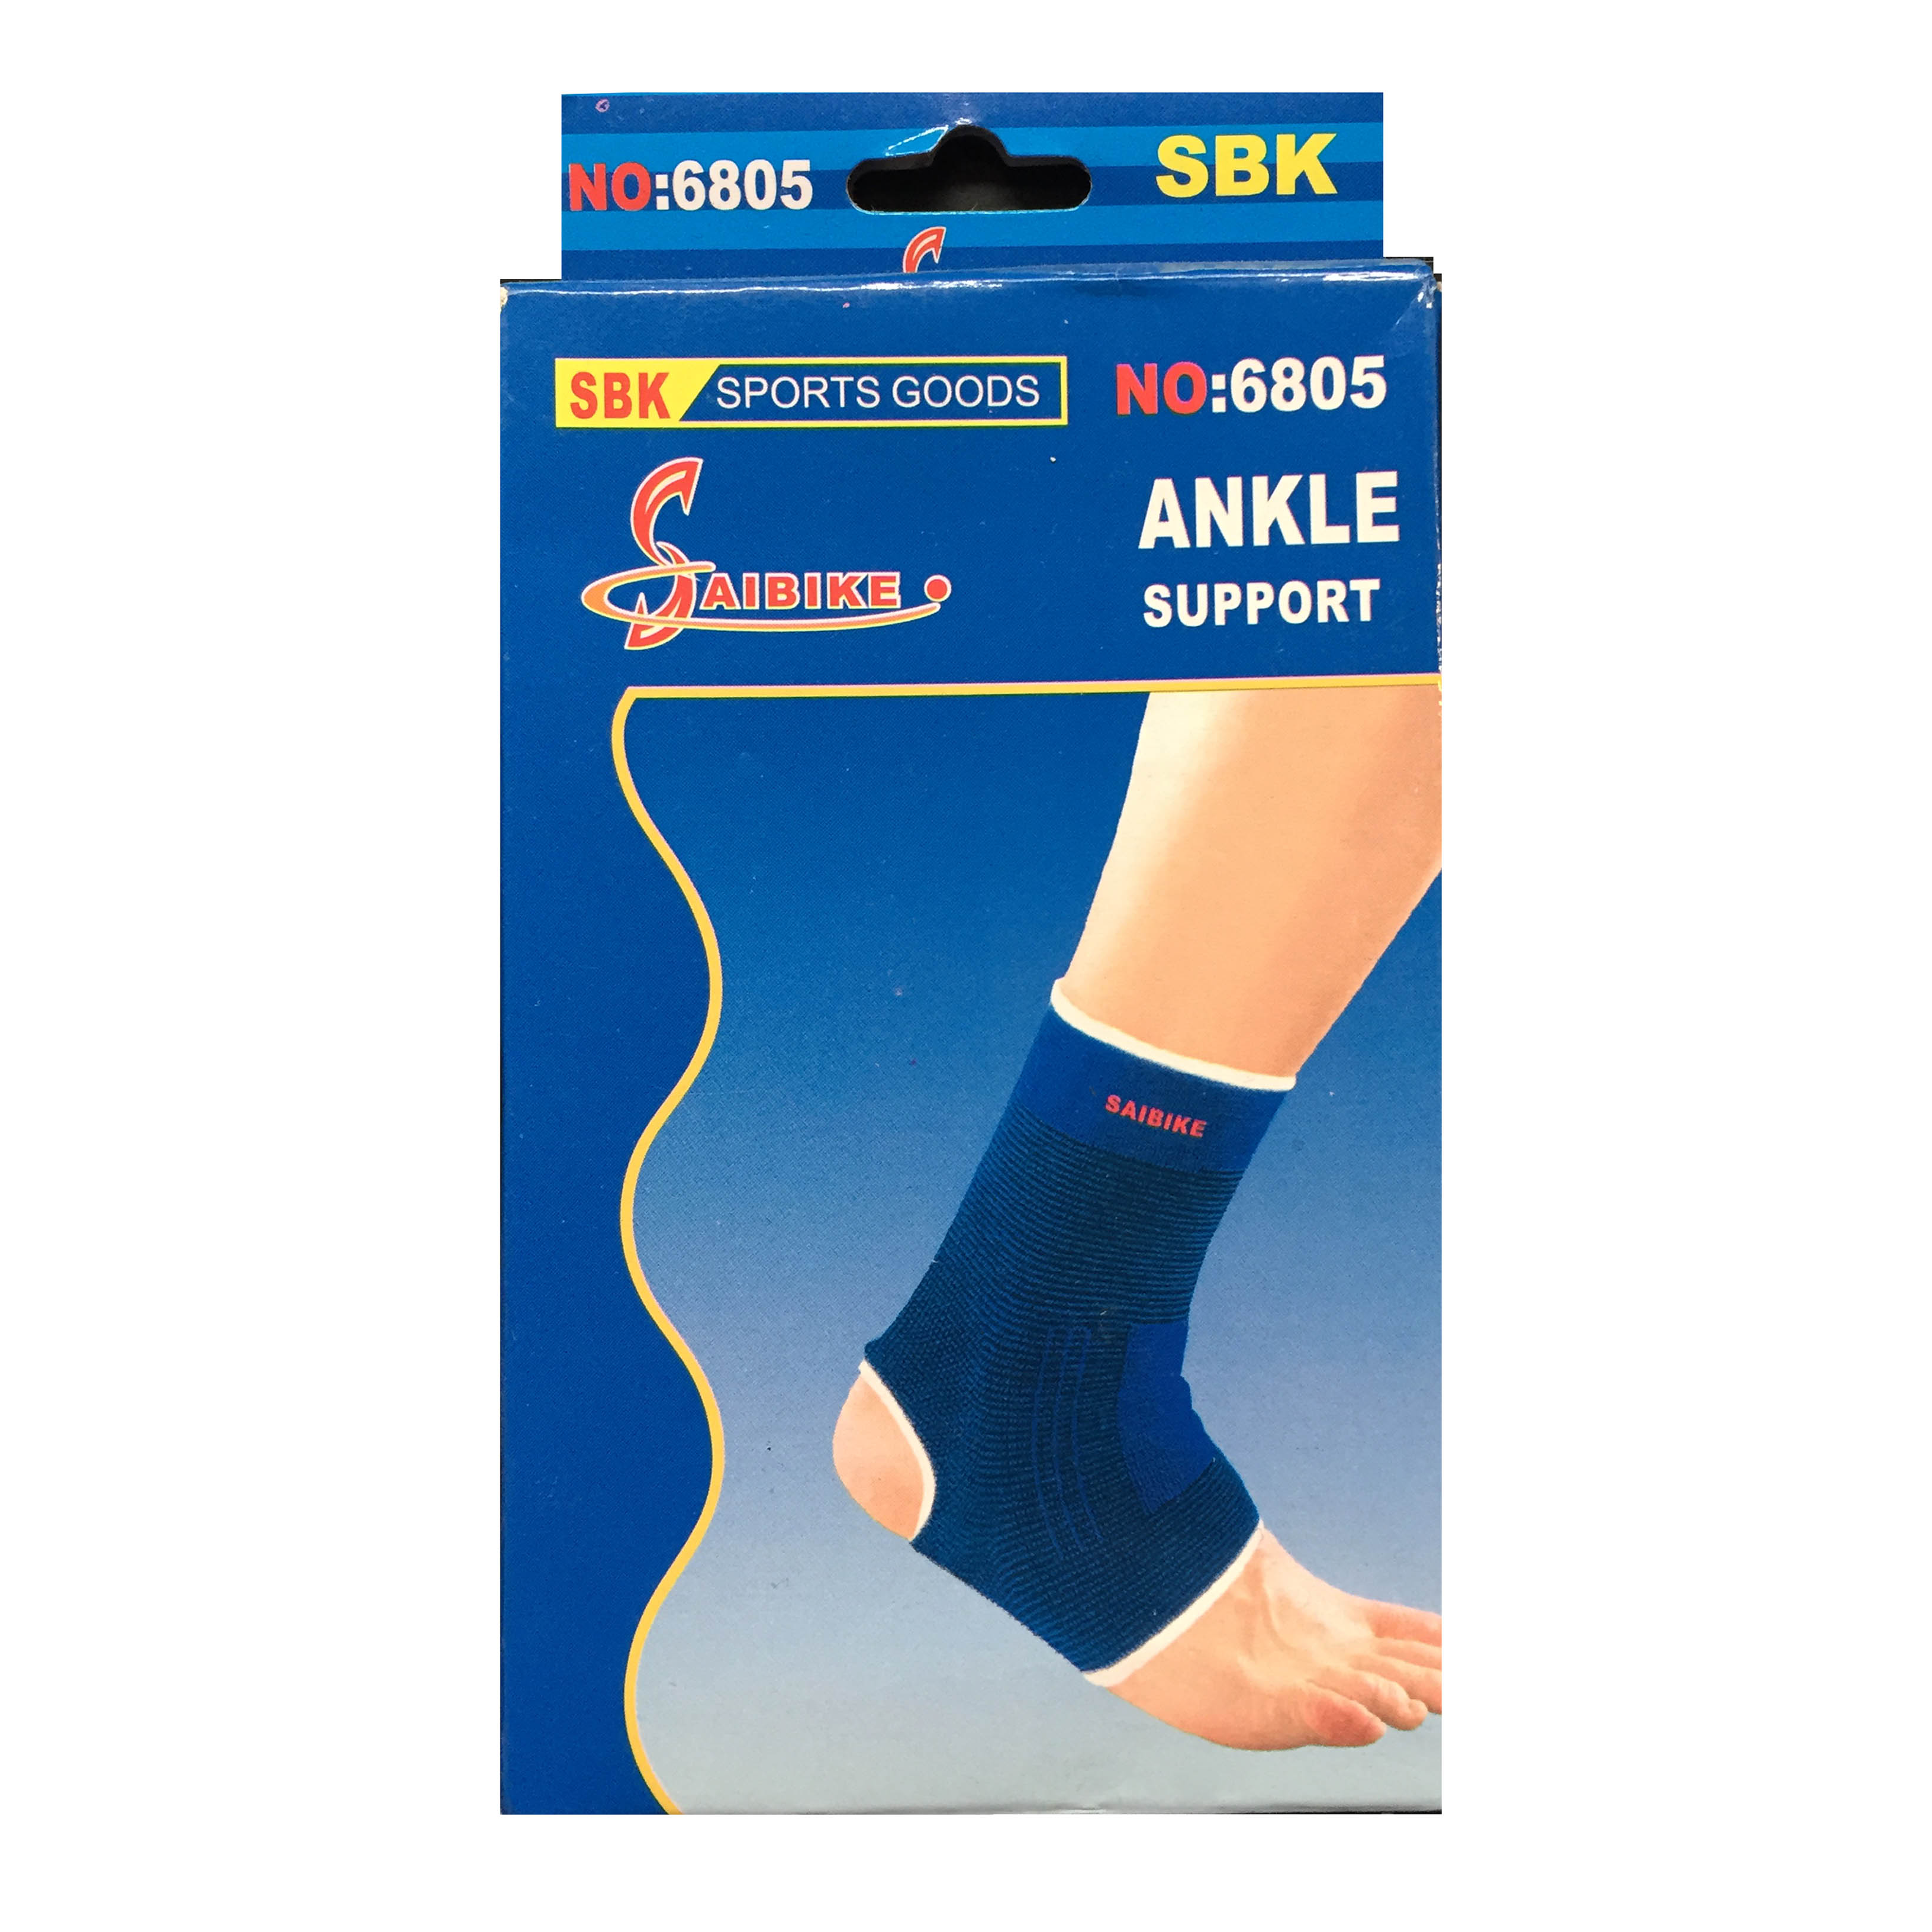 Sandee Ankle Support Premium Red Muay Thai Protection Anklets Kickboxing MMA Sold by MinotaurFightStore